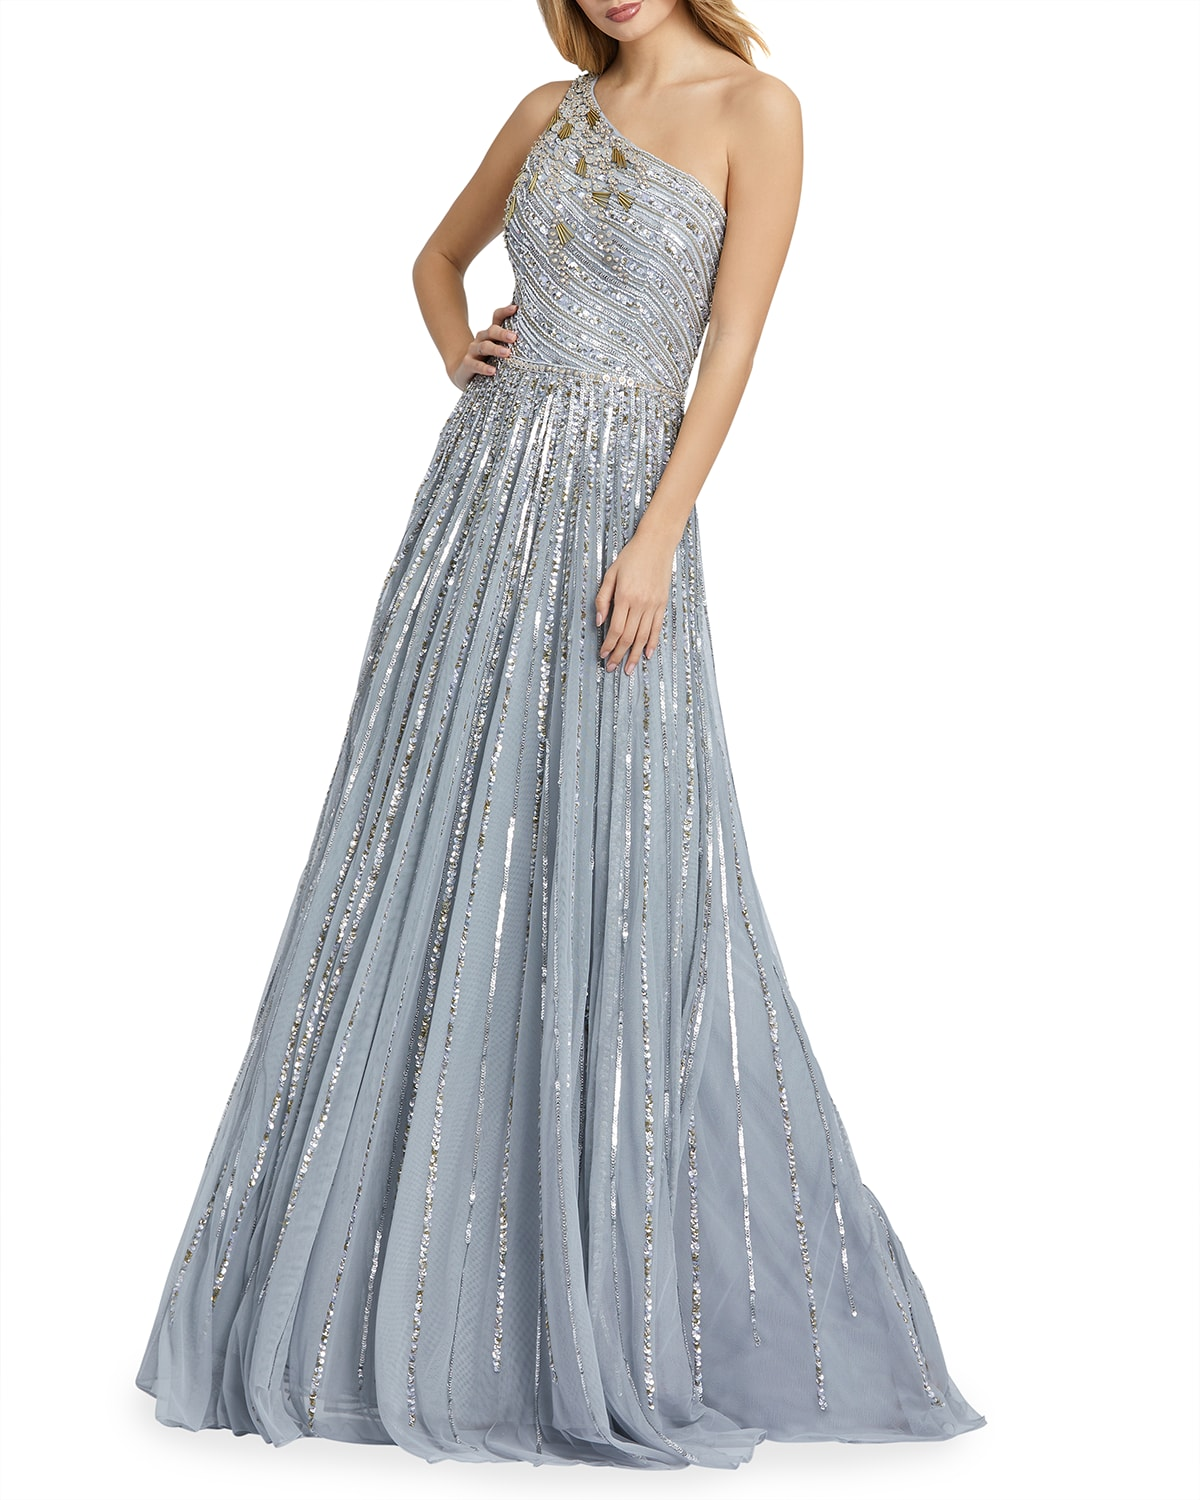 One-Shoulder Sequined A-Line Gown